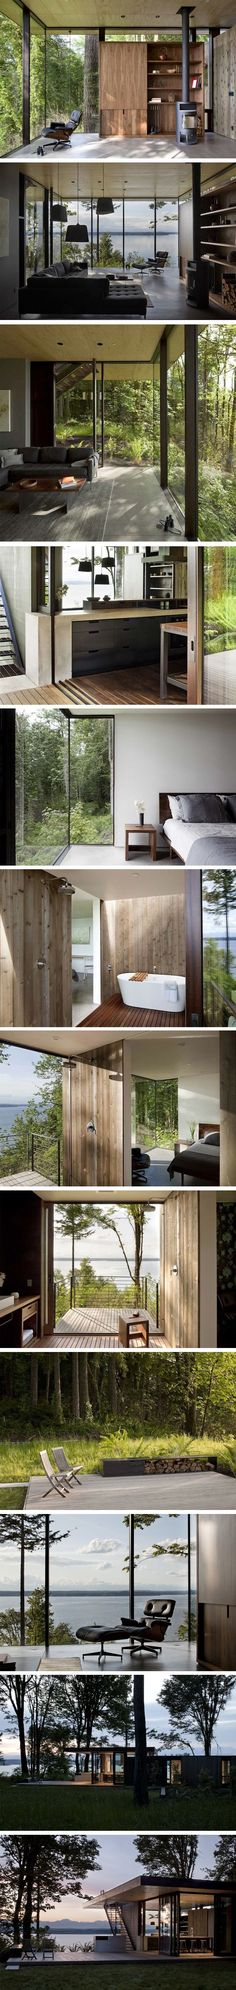 Case Inlet Retreat par MW/Works Architecture+Design - Journal du Design 2